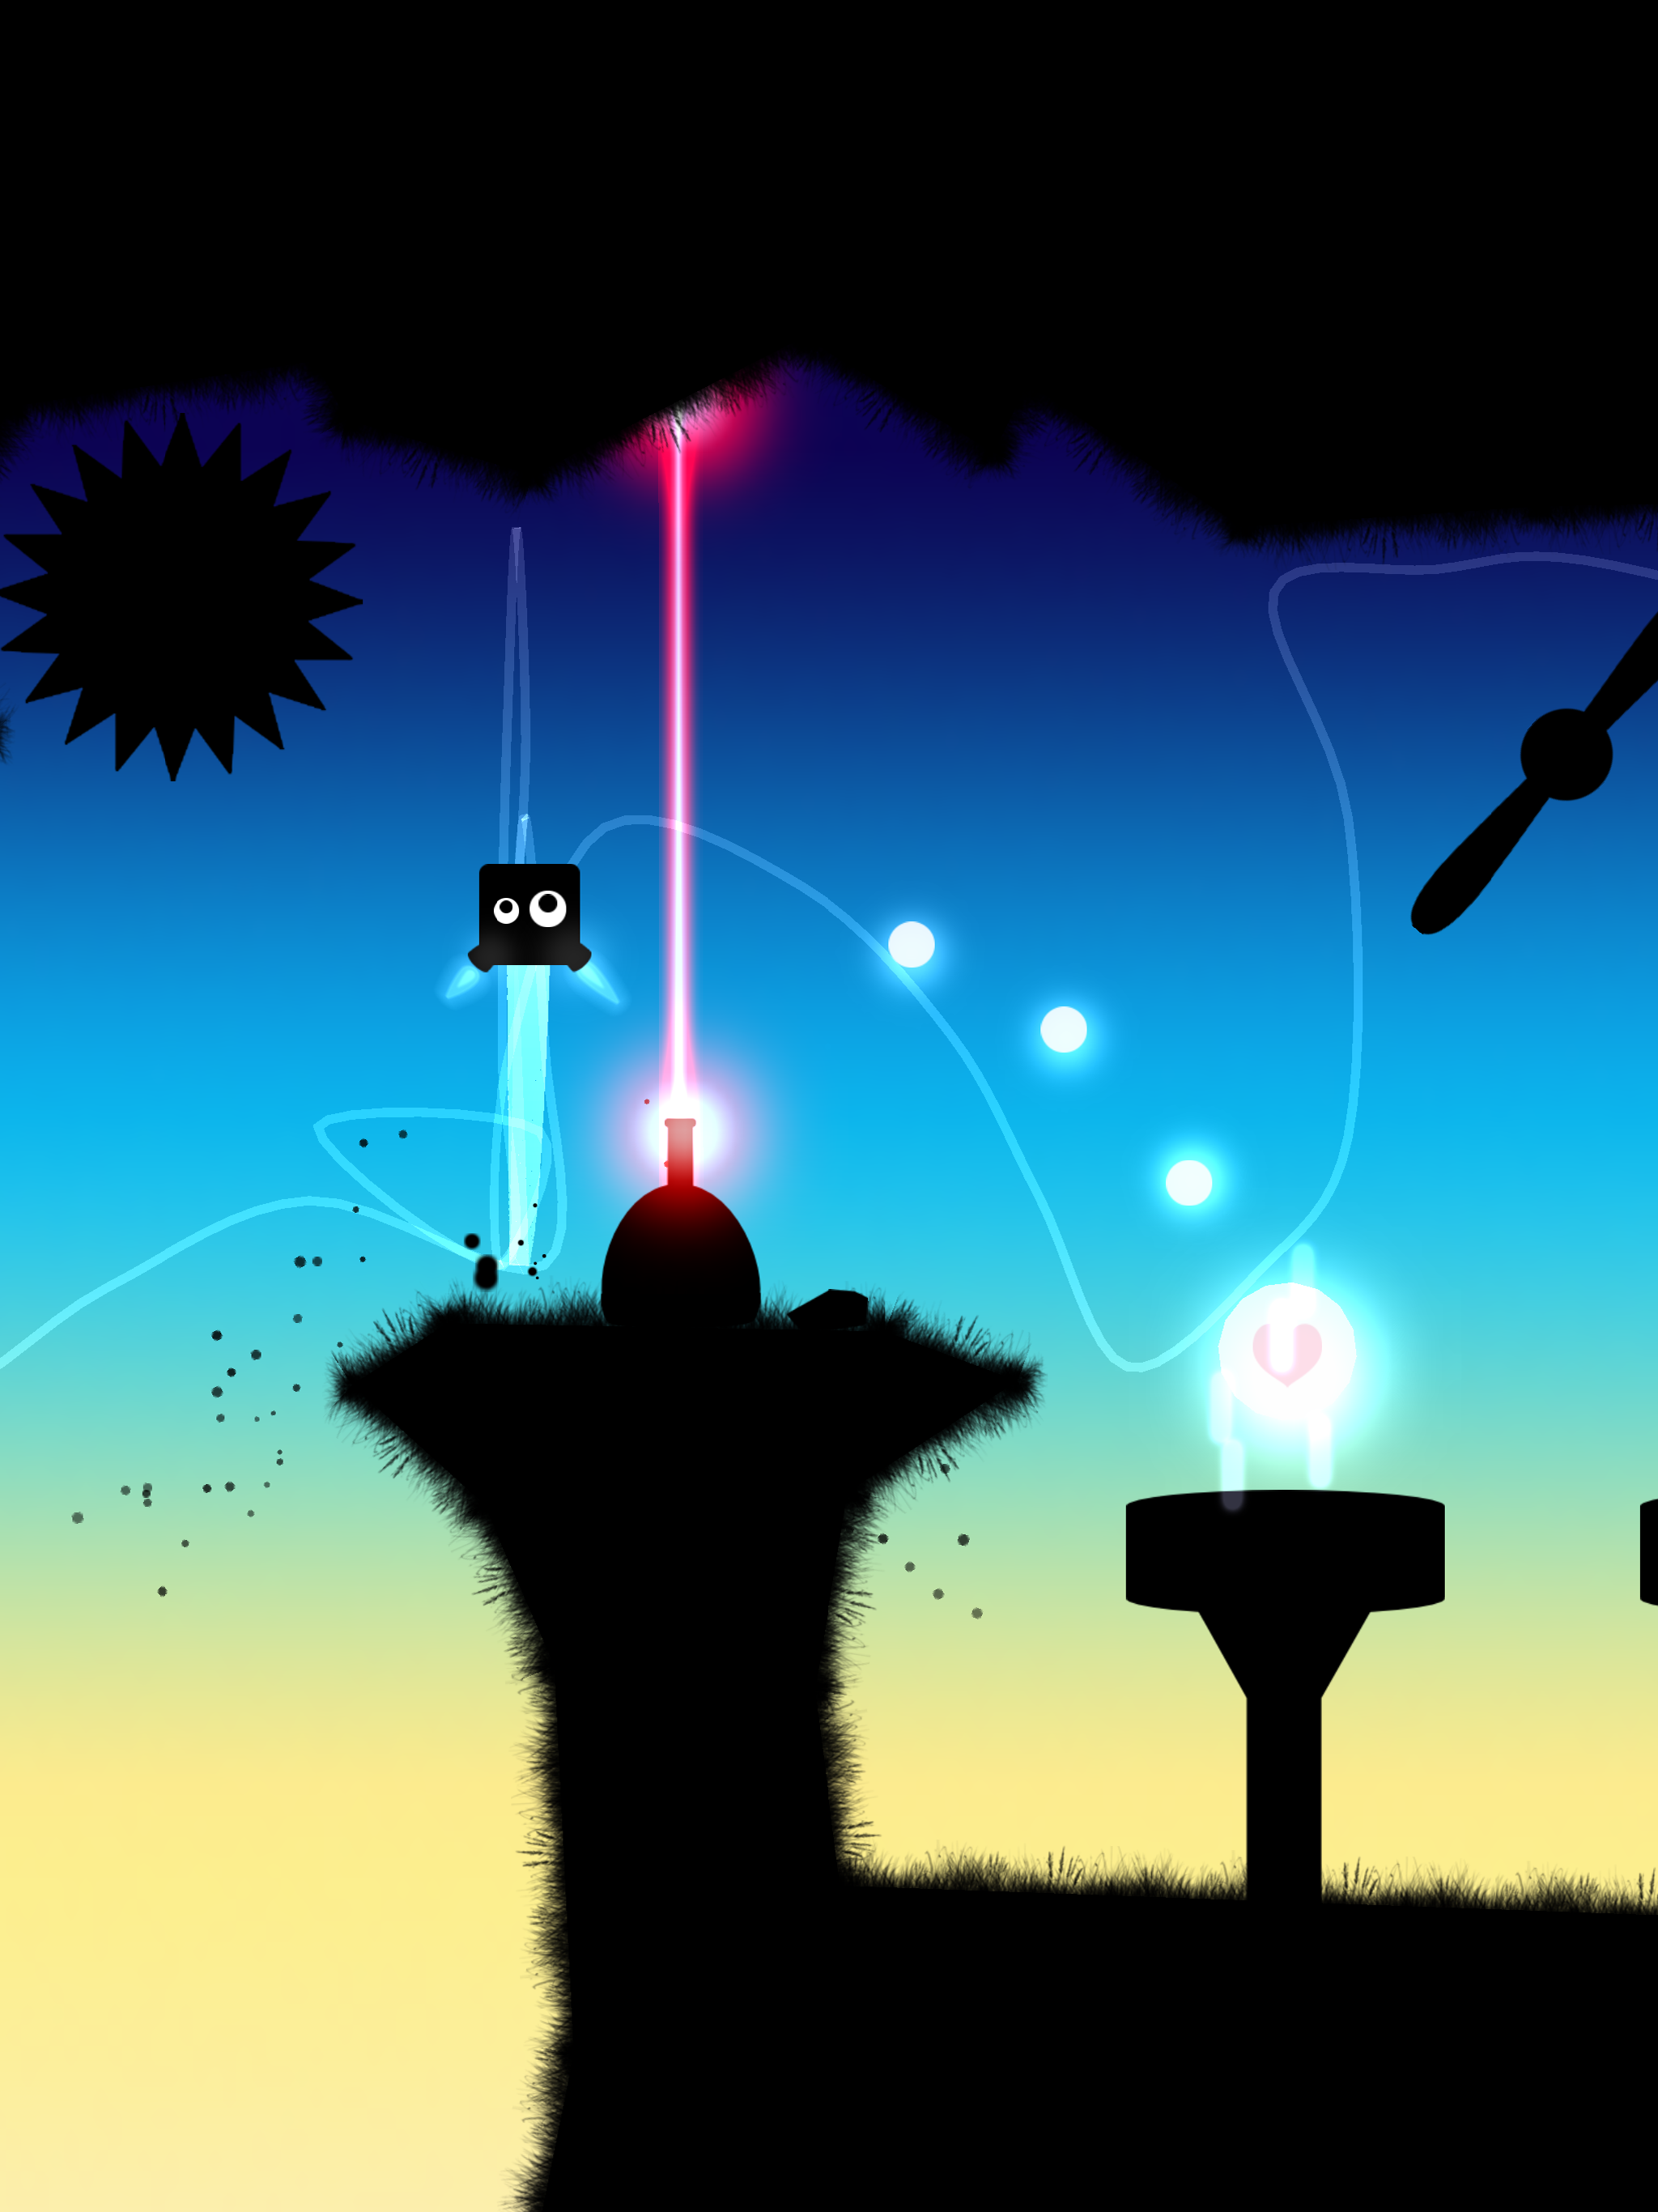 BotHeads [Free] by A Small Game flies into the App Store on July 6th Image